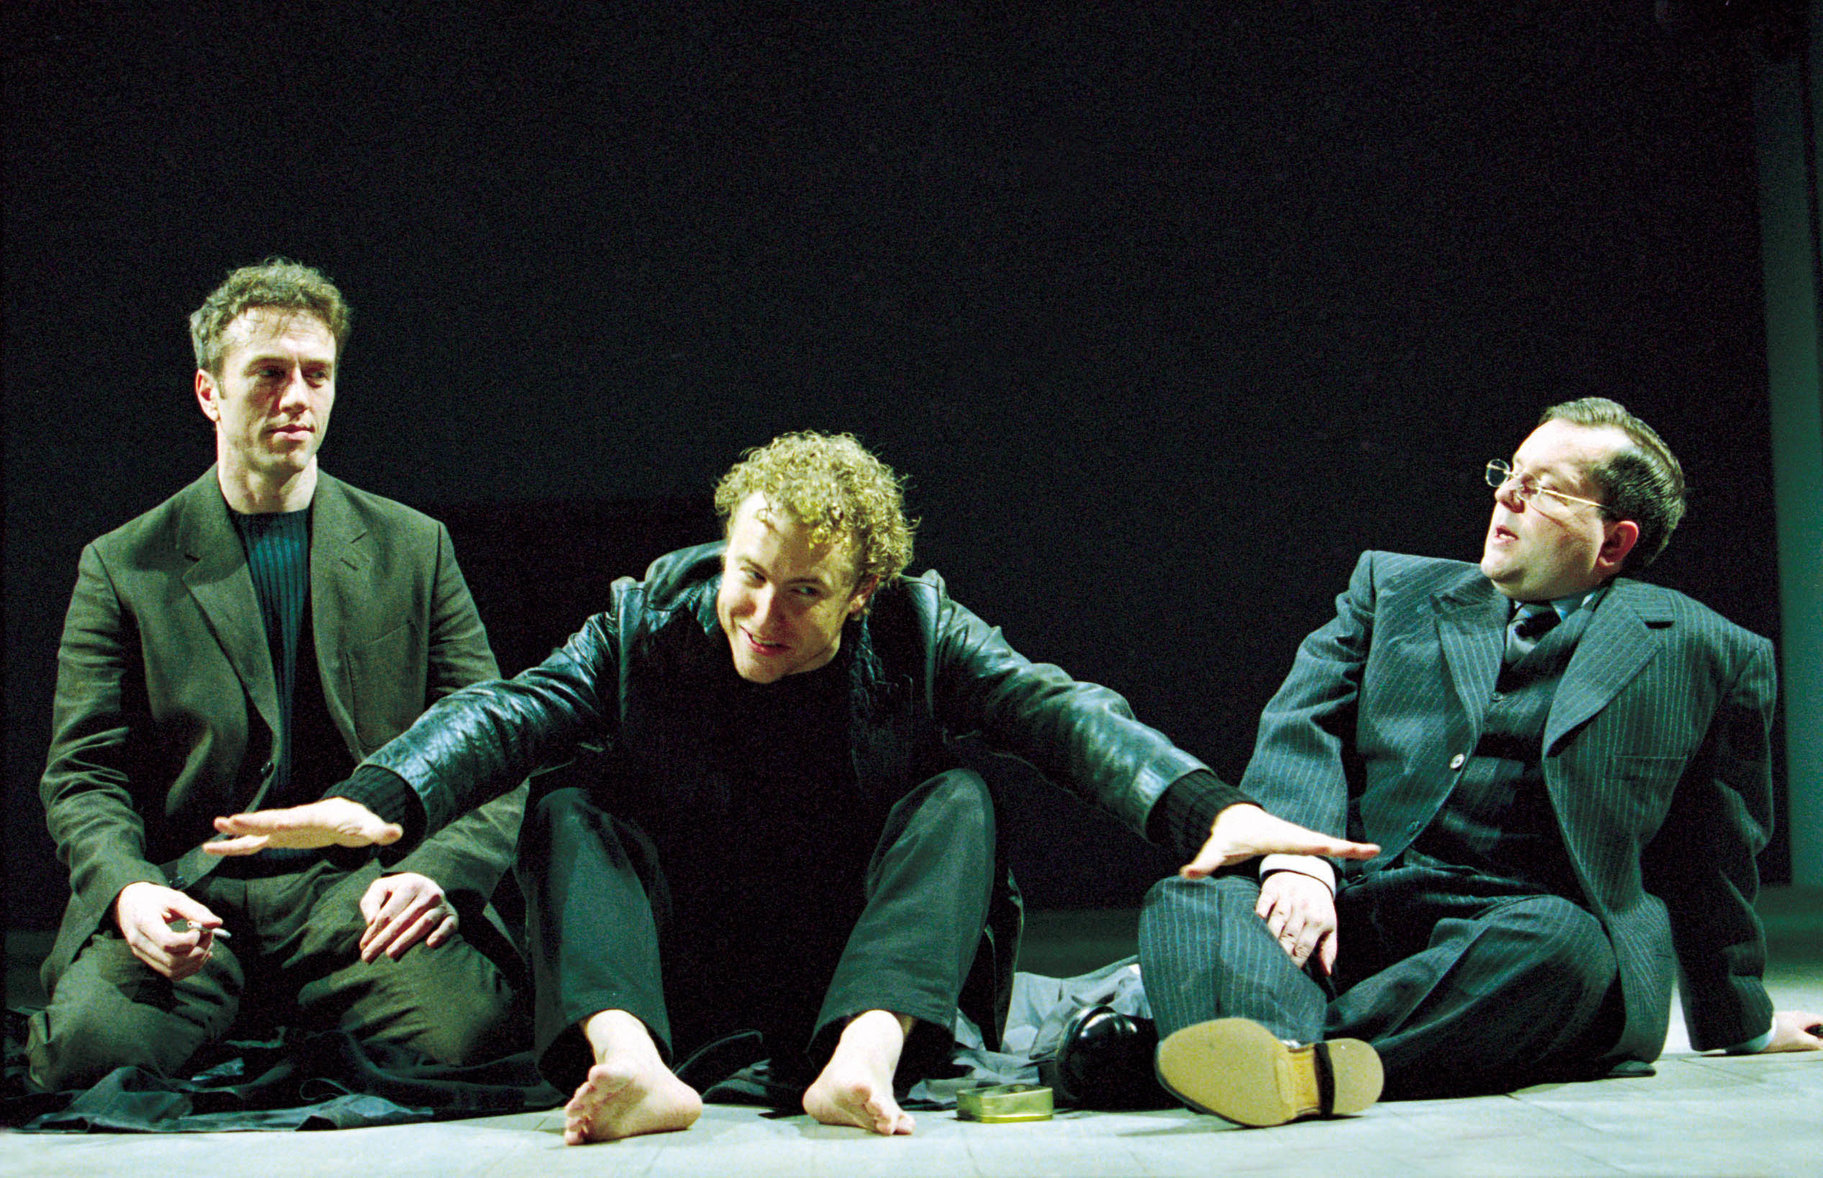 Hamlet in between Rosencrantz and Guildenstern.